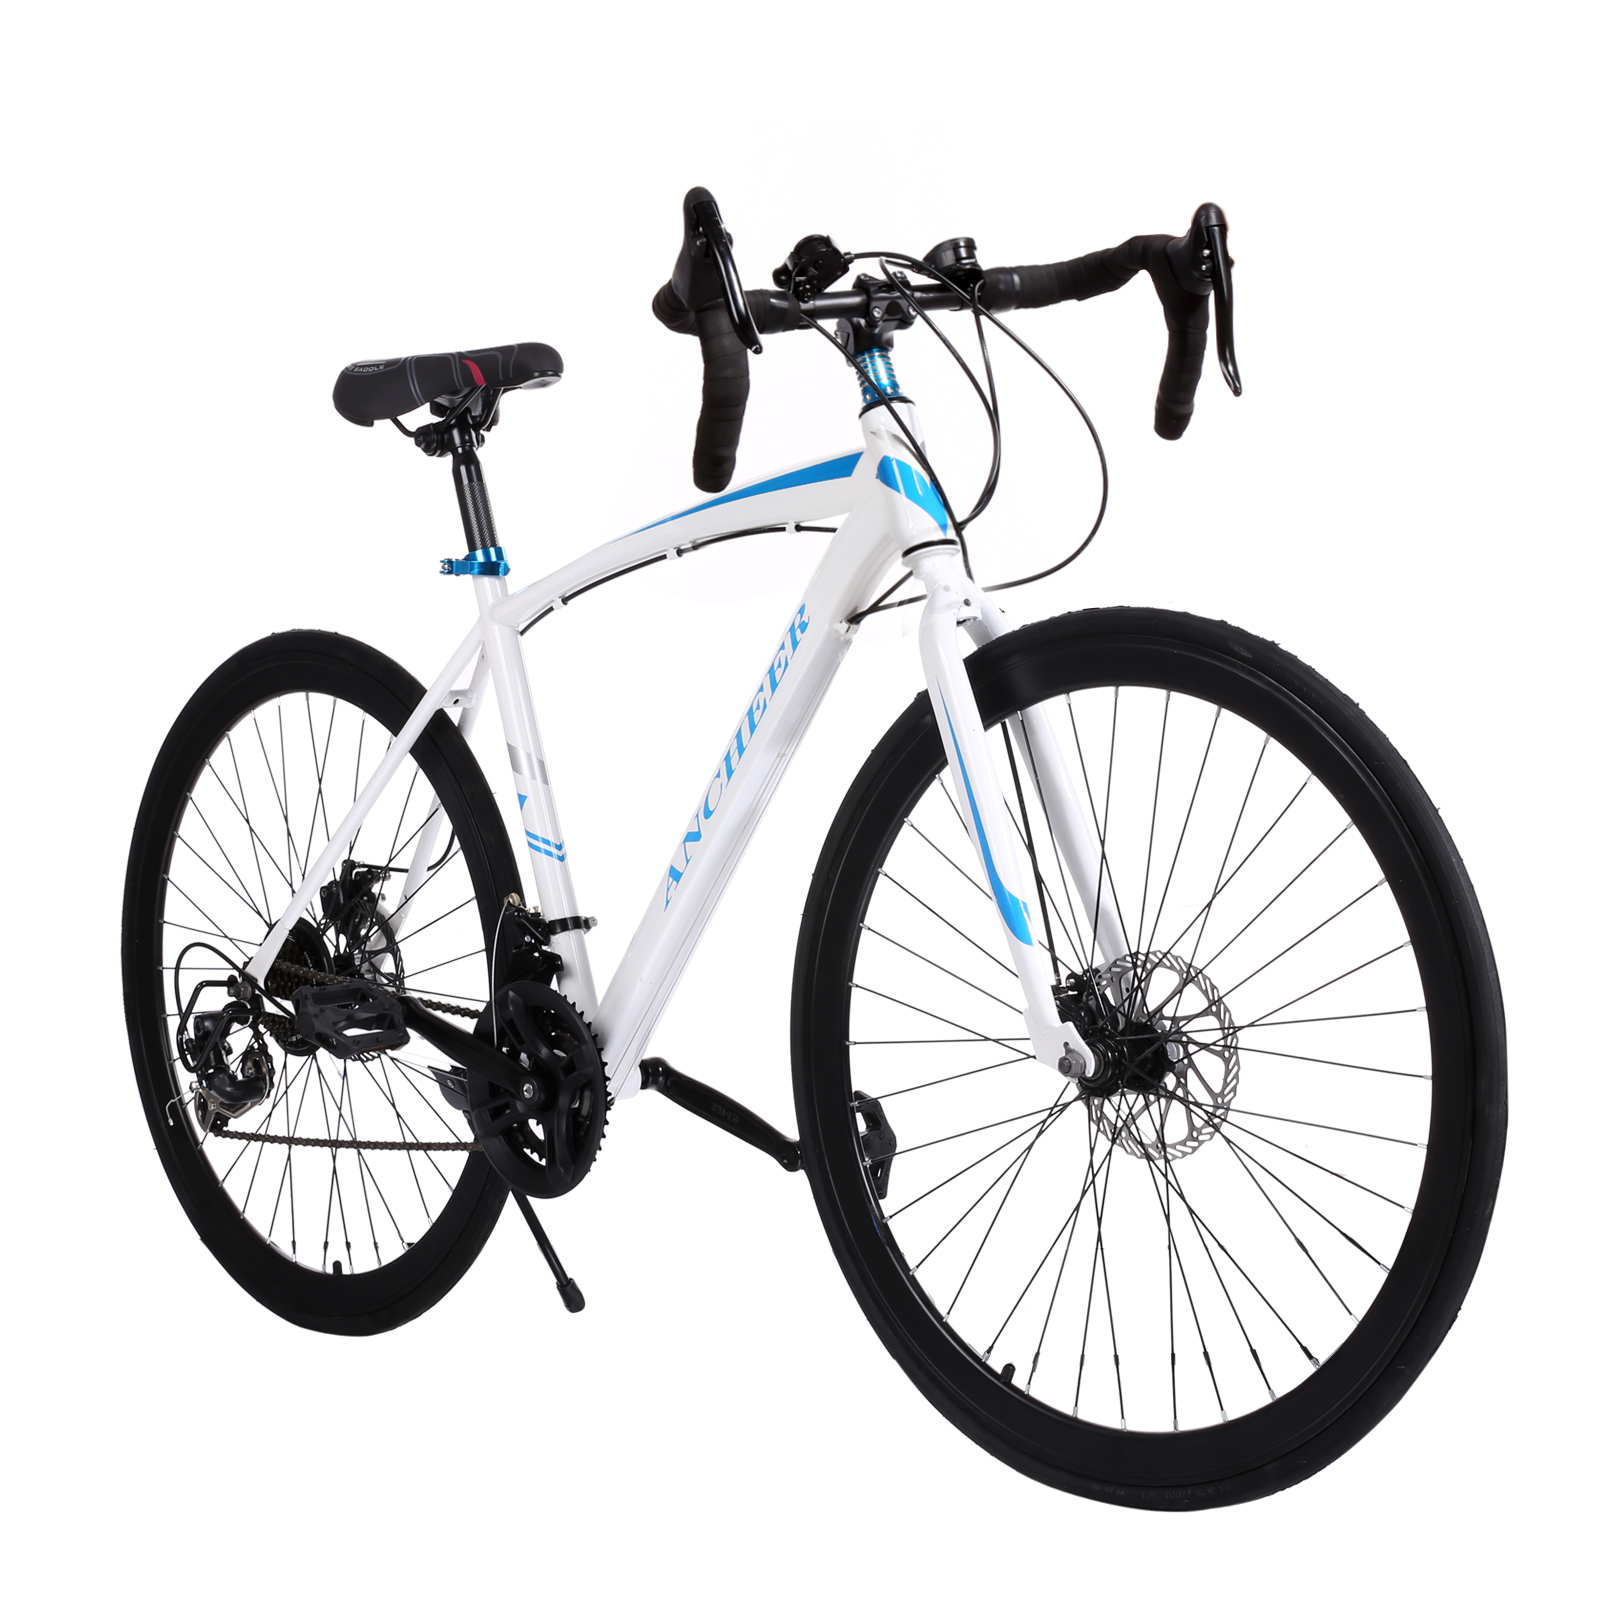 Ancheer High Quality 700C Aluminum Fixed Gear Road Bicycle Road Cycling Road Bike 4 Color(China (Mainland))